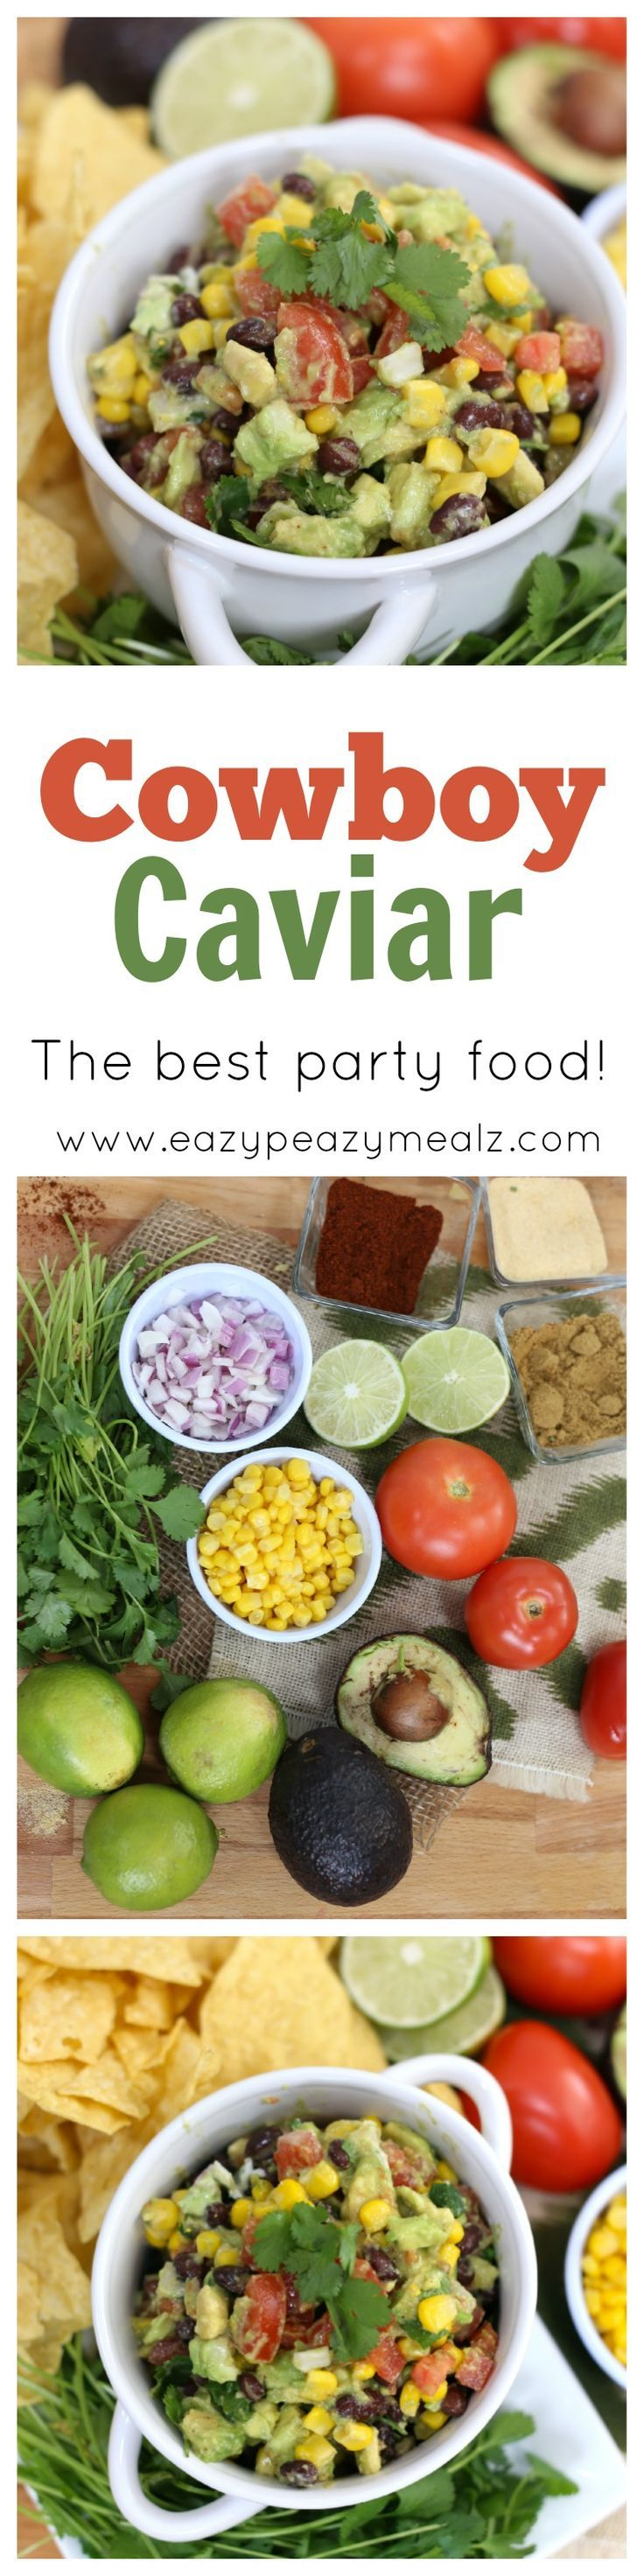 The best party food ever! This Cowboy Caviar is so dang good. Fresh limes, avocado, corn, tomato, and more!  It always gets gobbled up fast! - Eazy Peazy Mealz